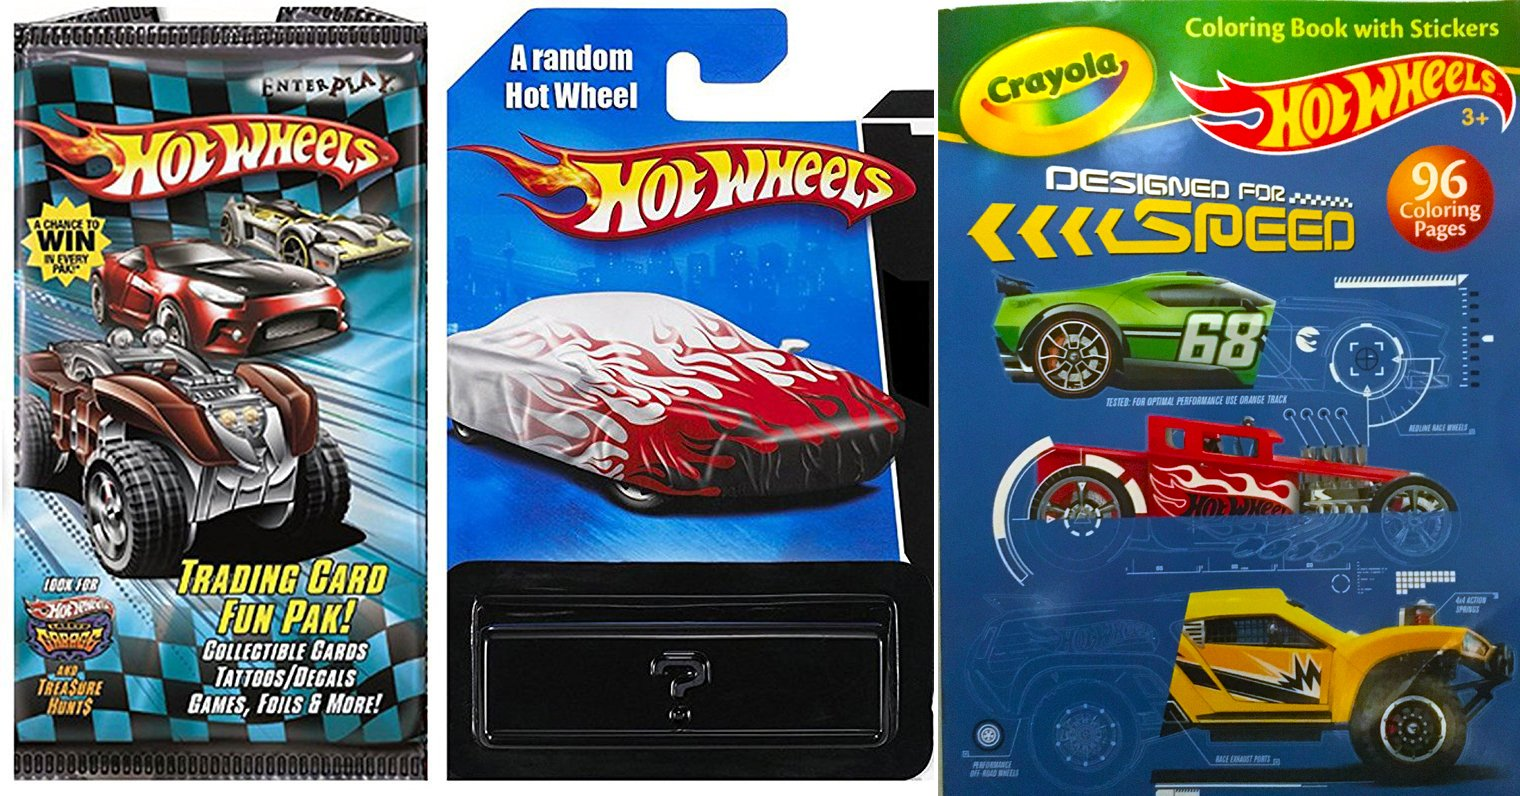 team hot wheels crayola sticker coloring racing book party. Black Bedroom Furniture Sets. Home Design Ideas